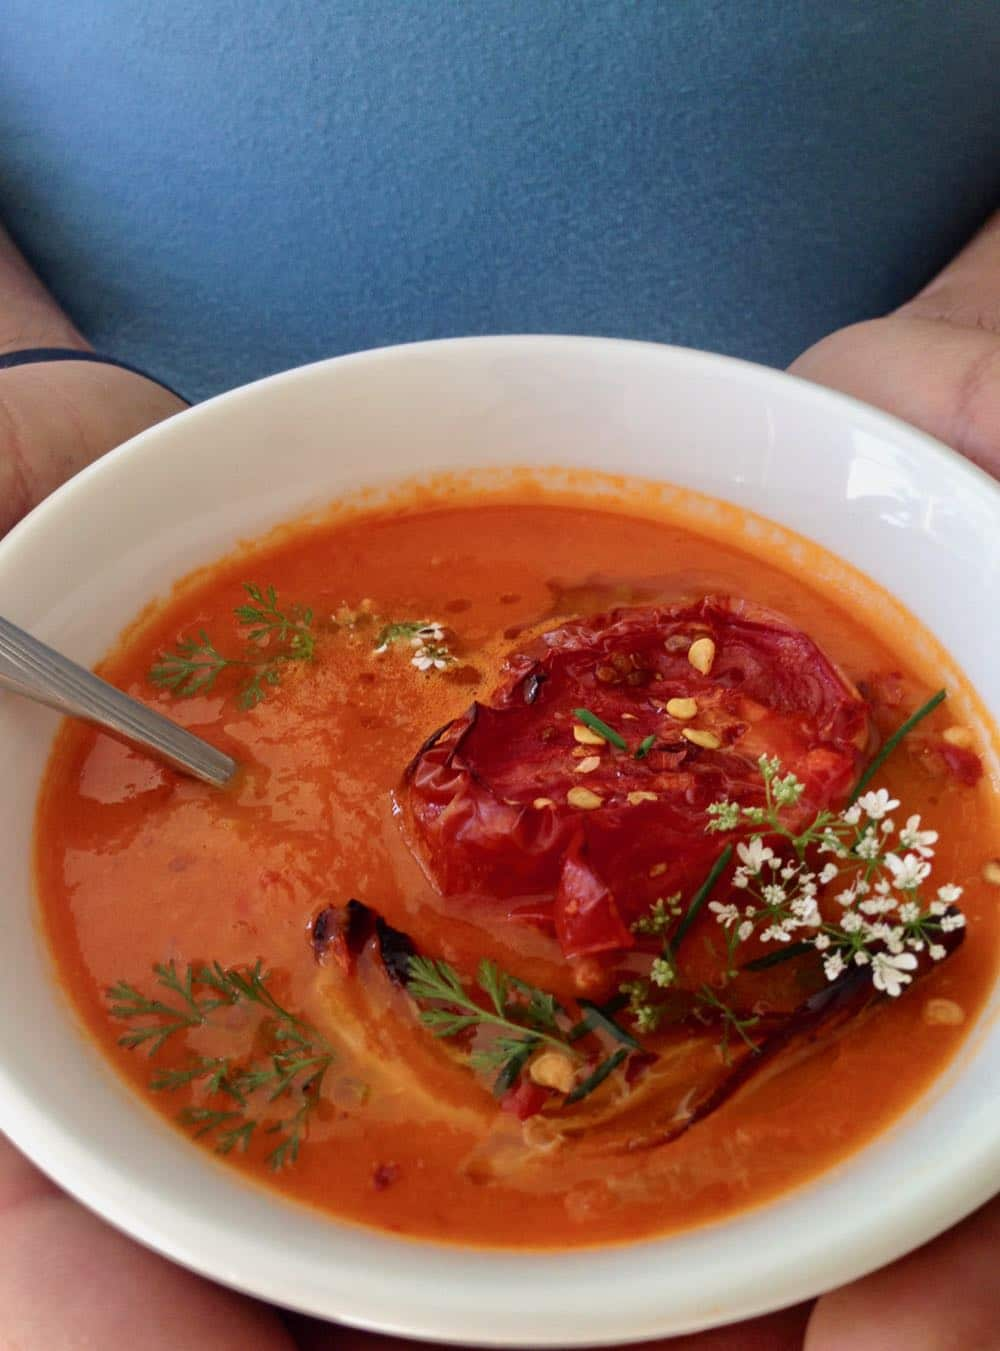 Best Heirloom Tomato Soup from Scratch